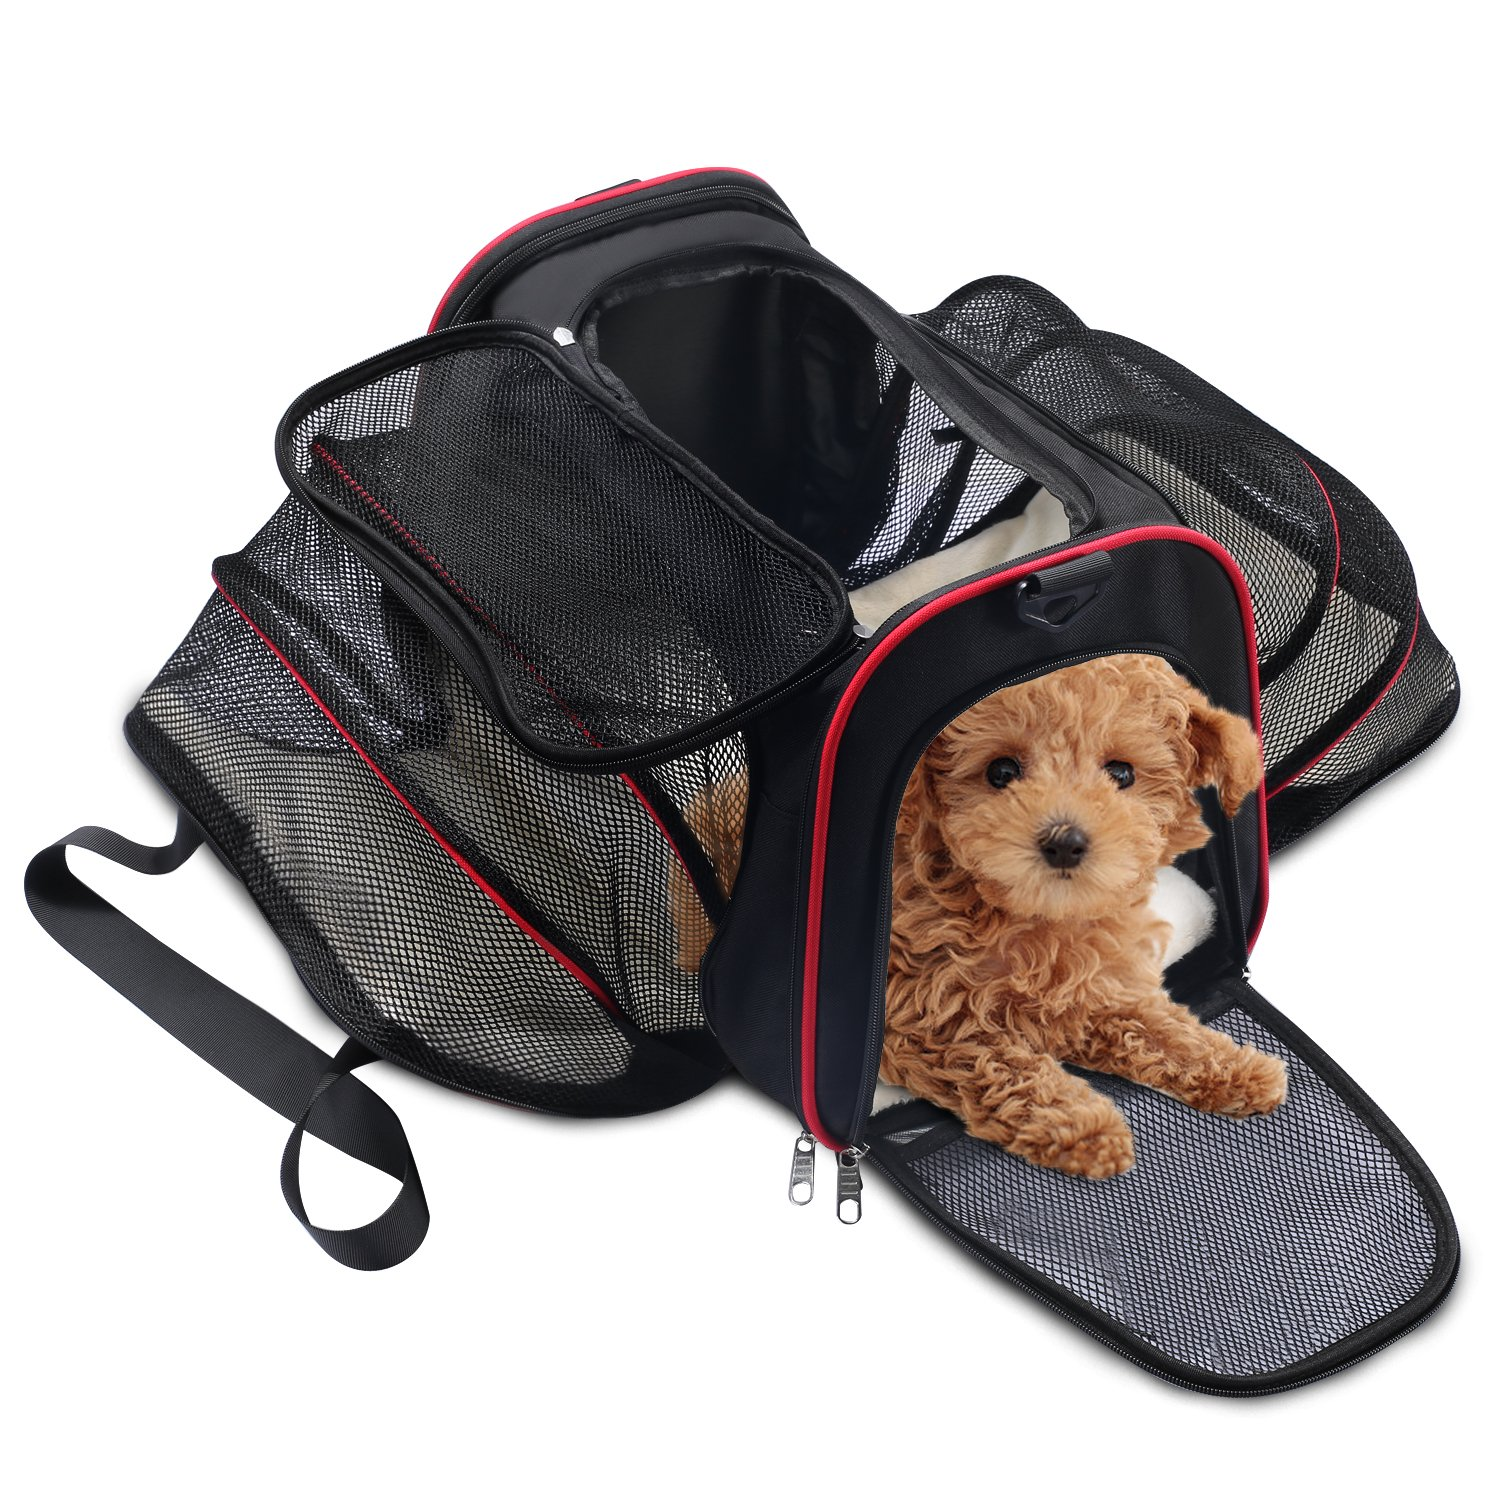 Soft Side Pet Carrier, Pet Carrier for Dogs & Cats, Expandable Soft Pet Carrier with Removable Fleece Mat for Easy Carry on Luggage, Travel Bag for Small Animals, Portable Handbag, Black